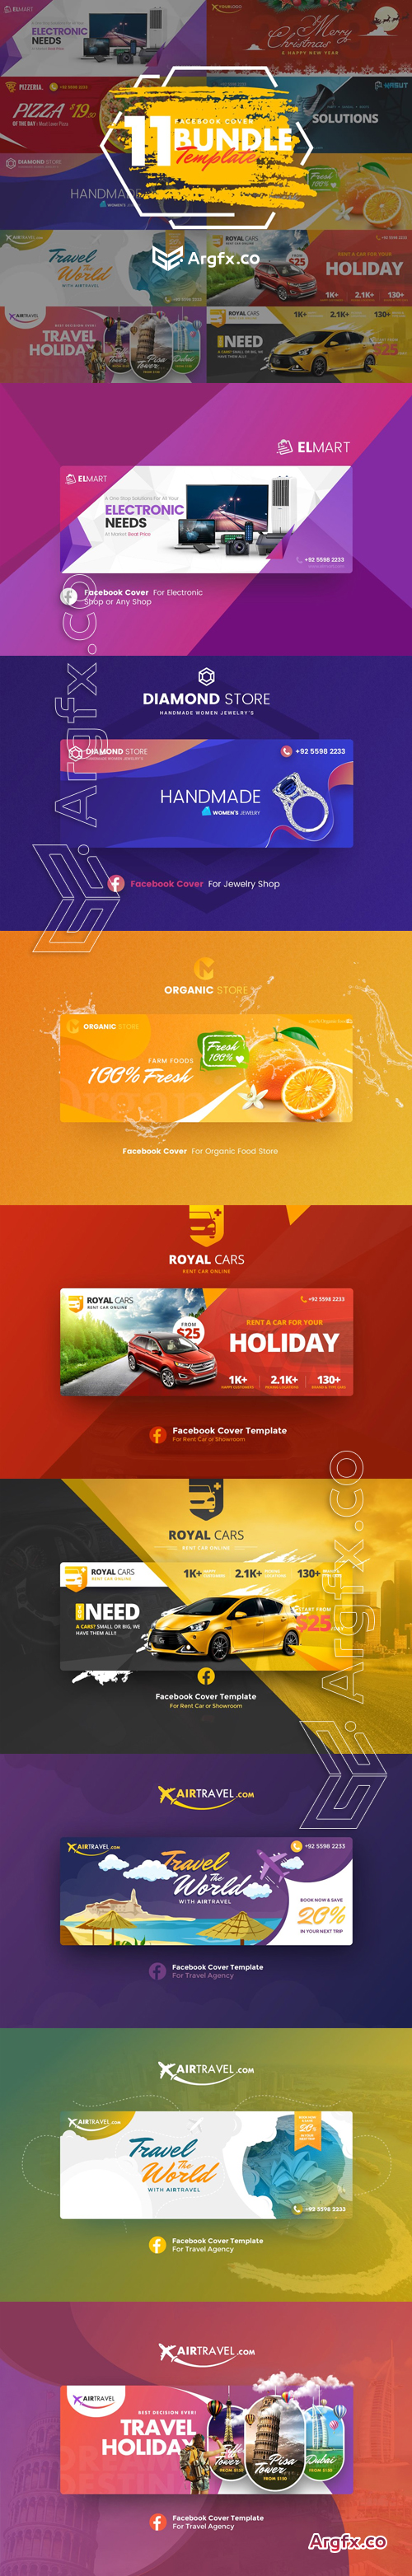 CreativeMarket - Facebook Cover Bundle 2964061